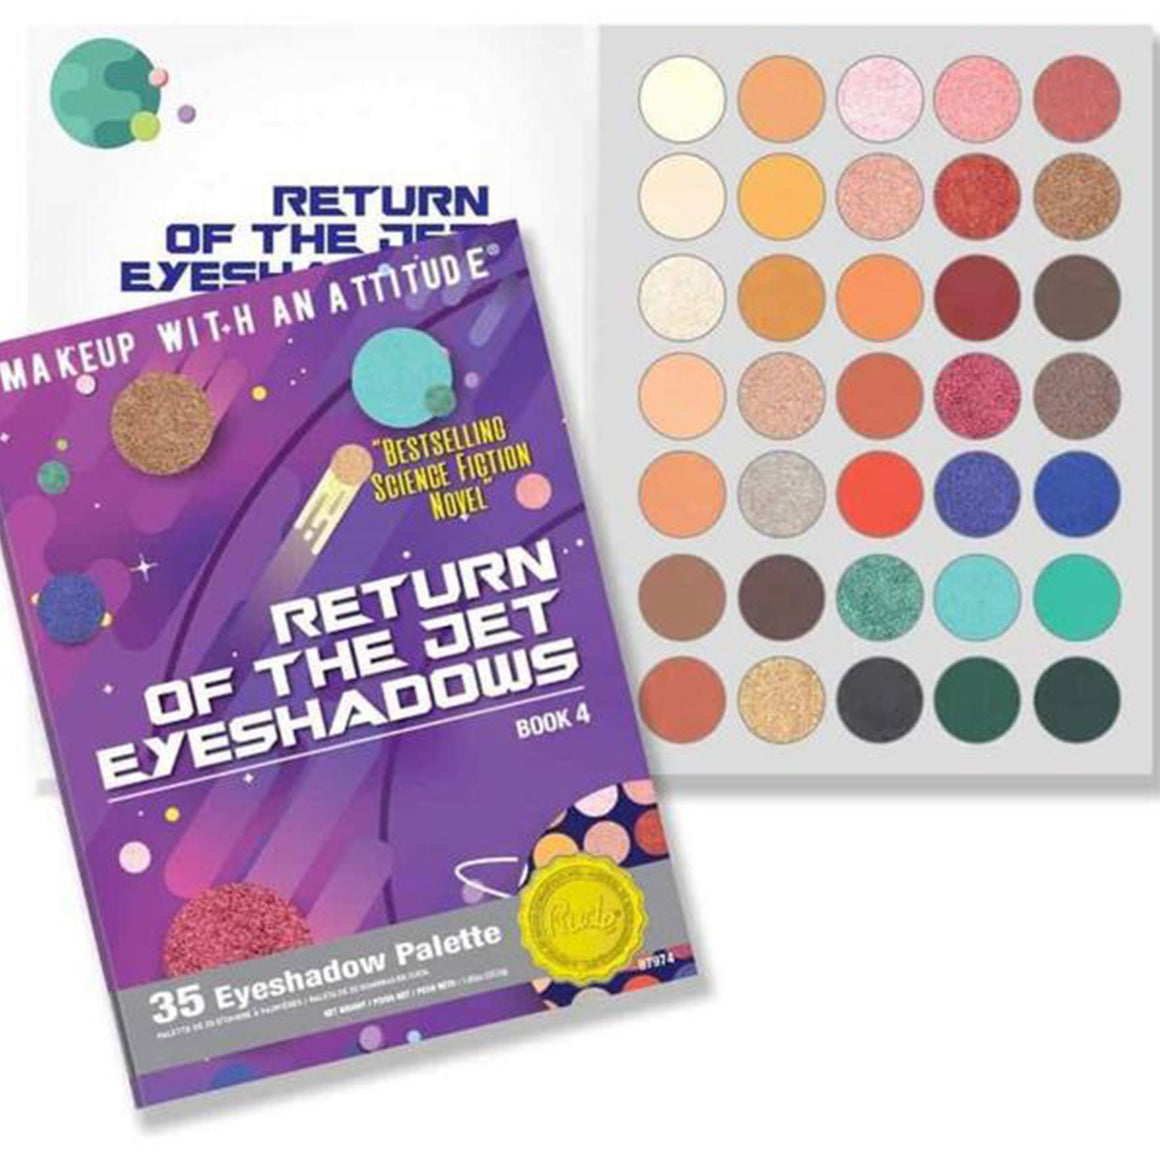 RUDE - Return of the Jet Eyeshadow Palette